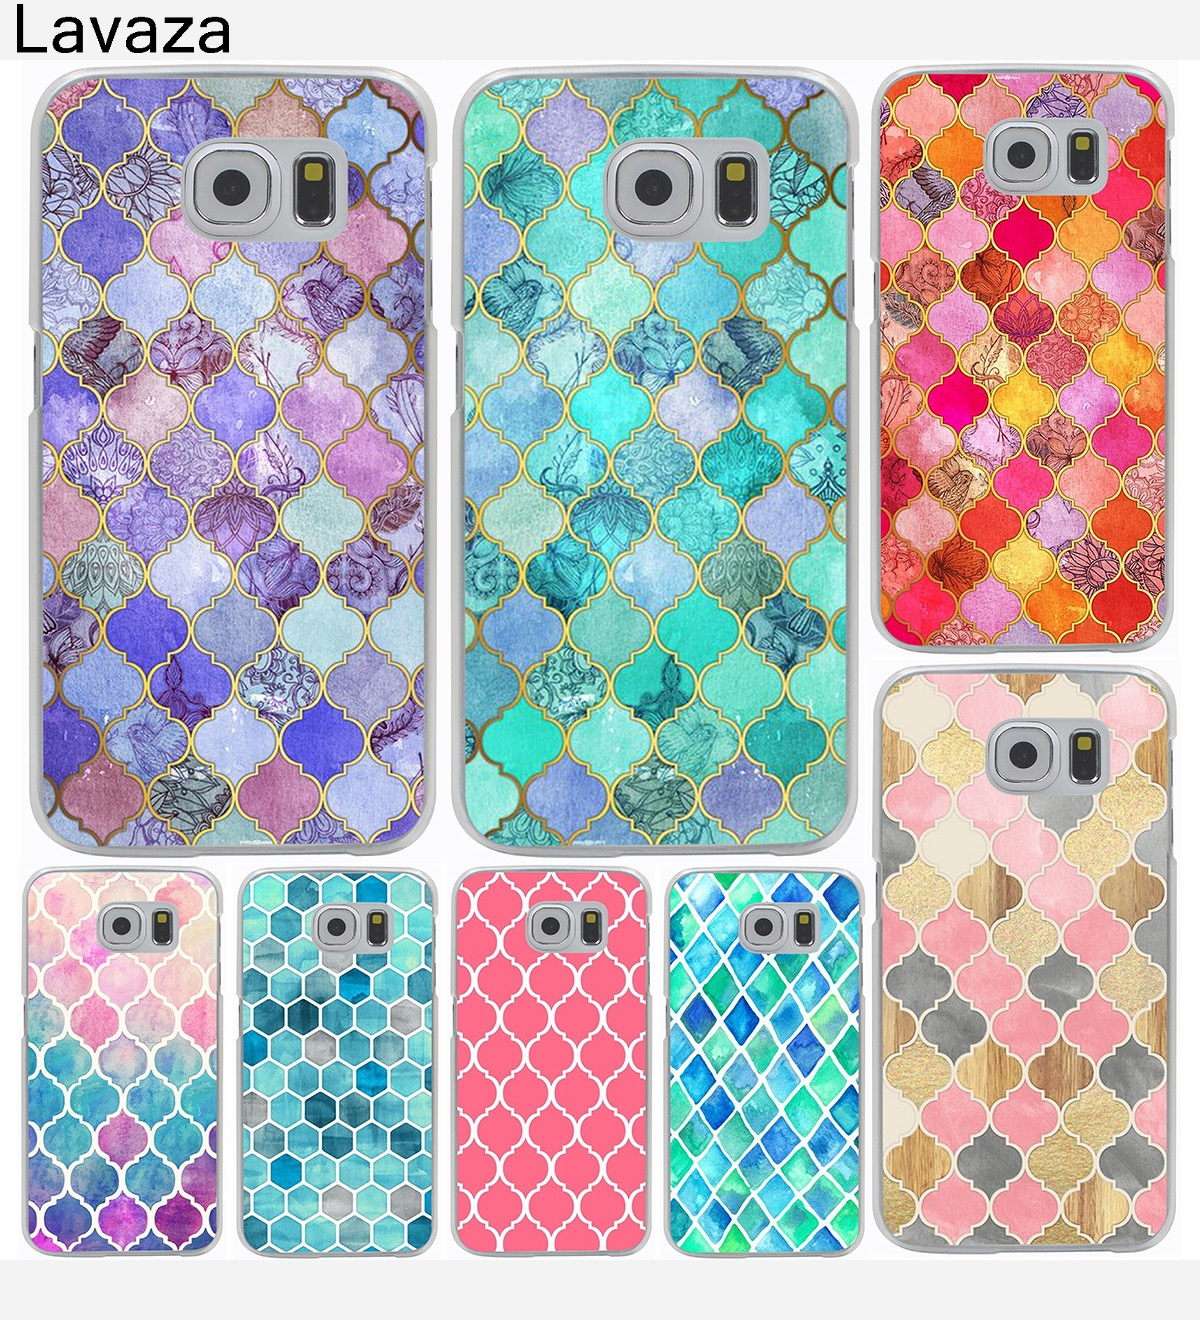 Beautiful Mermaid Scales Hard Cover Case for Galaxy S3 S4 S5 & Mini S6 S7 S8 Edge Plus